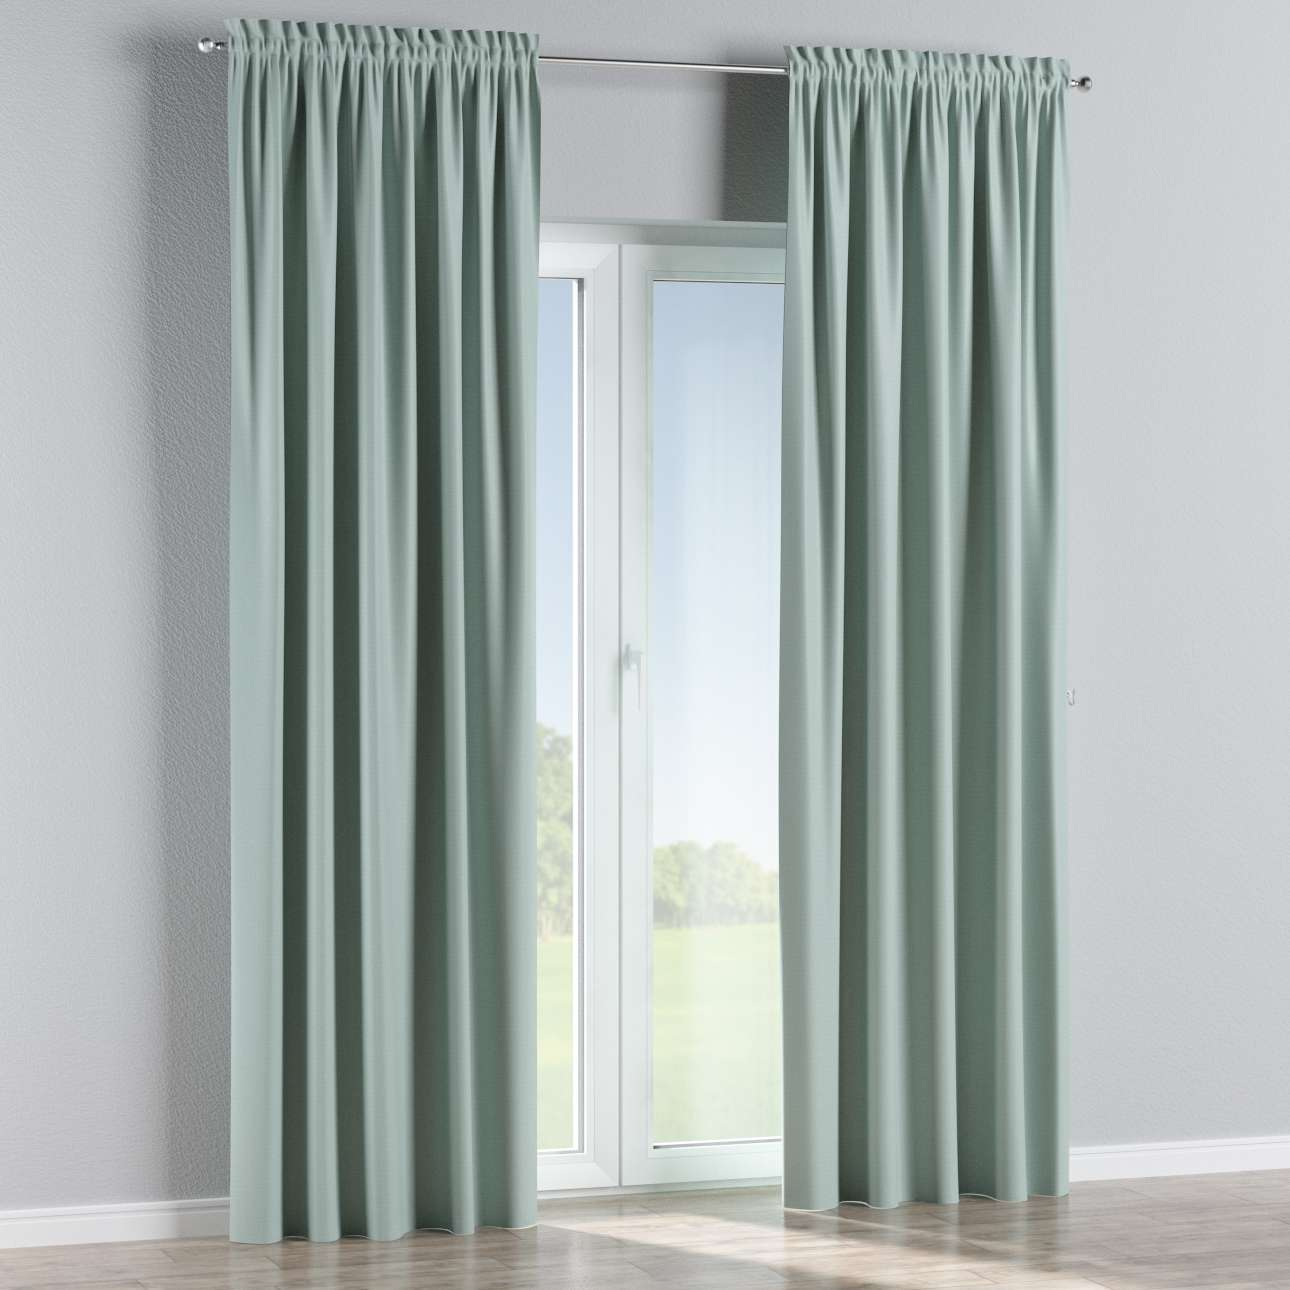 Blackout slot and frill curtains 140 x 260 cm (approx. 55 x 102 inch) in collection Blackout, fabric: 269-61